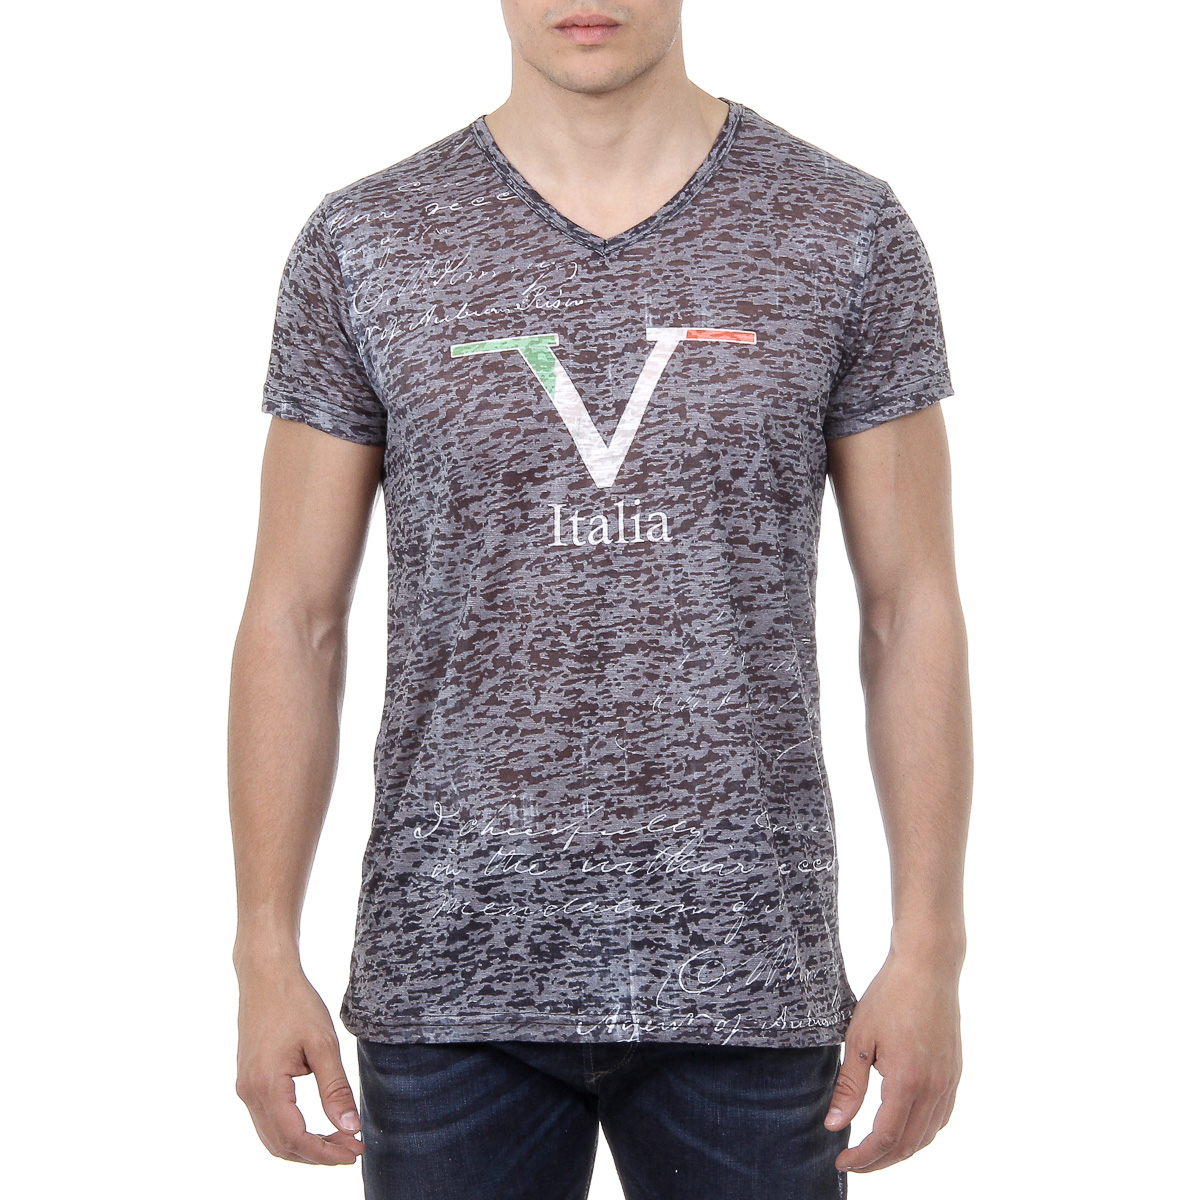 Primary image for V 1969 Italia Mens T-shirt Short Sleeves V-Neck Black JACOB